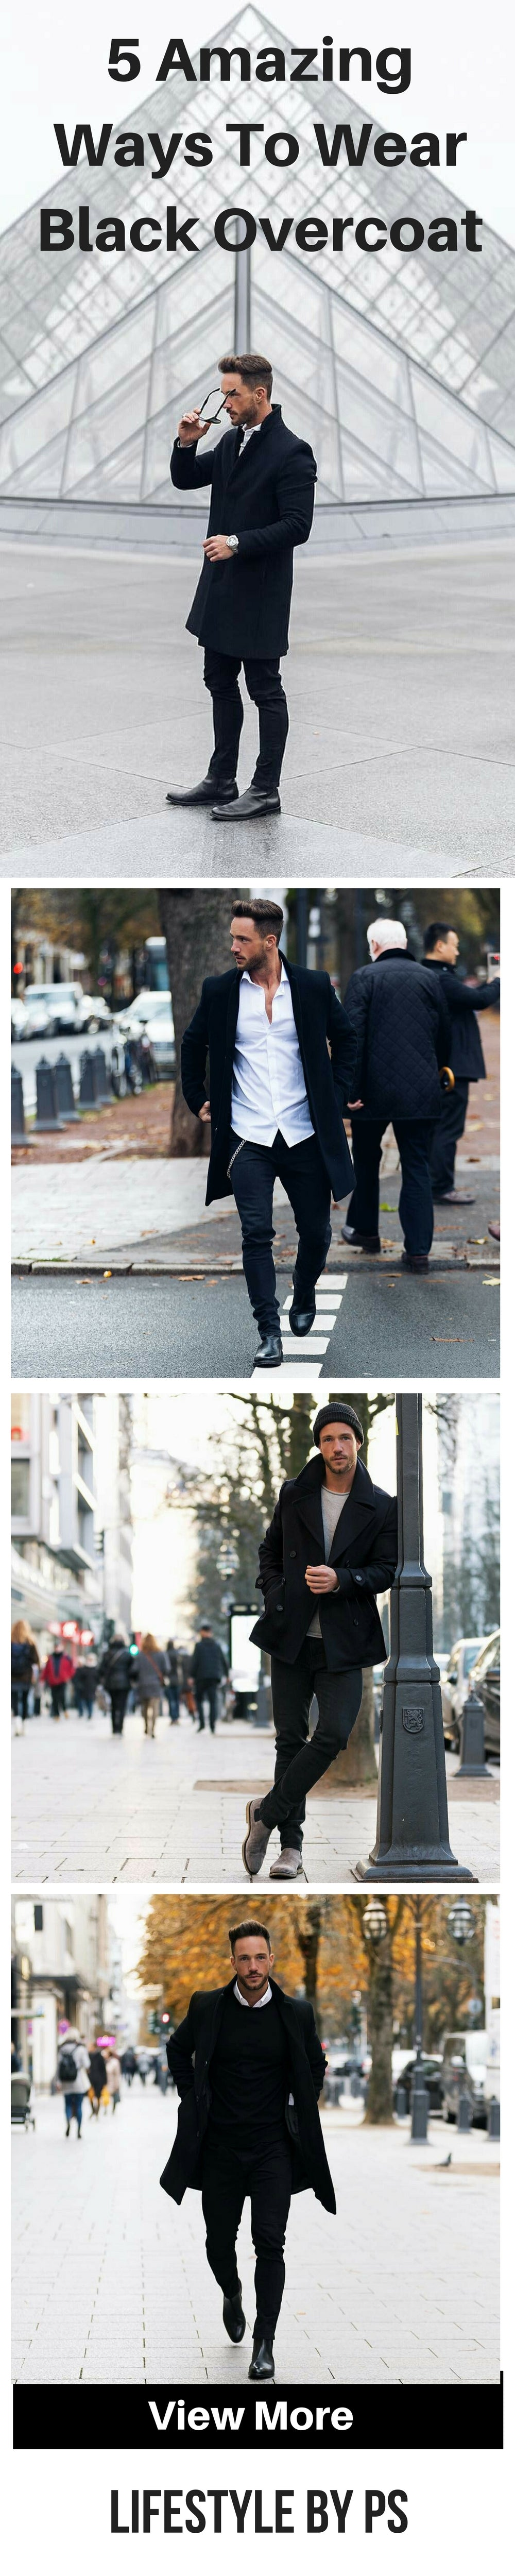 How to wear black overcoat for men